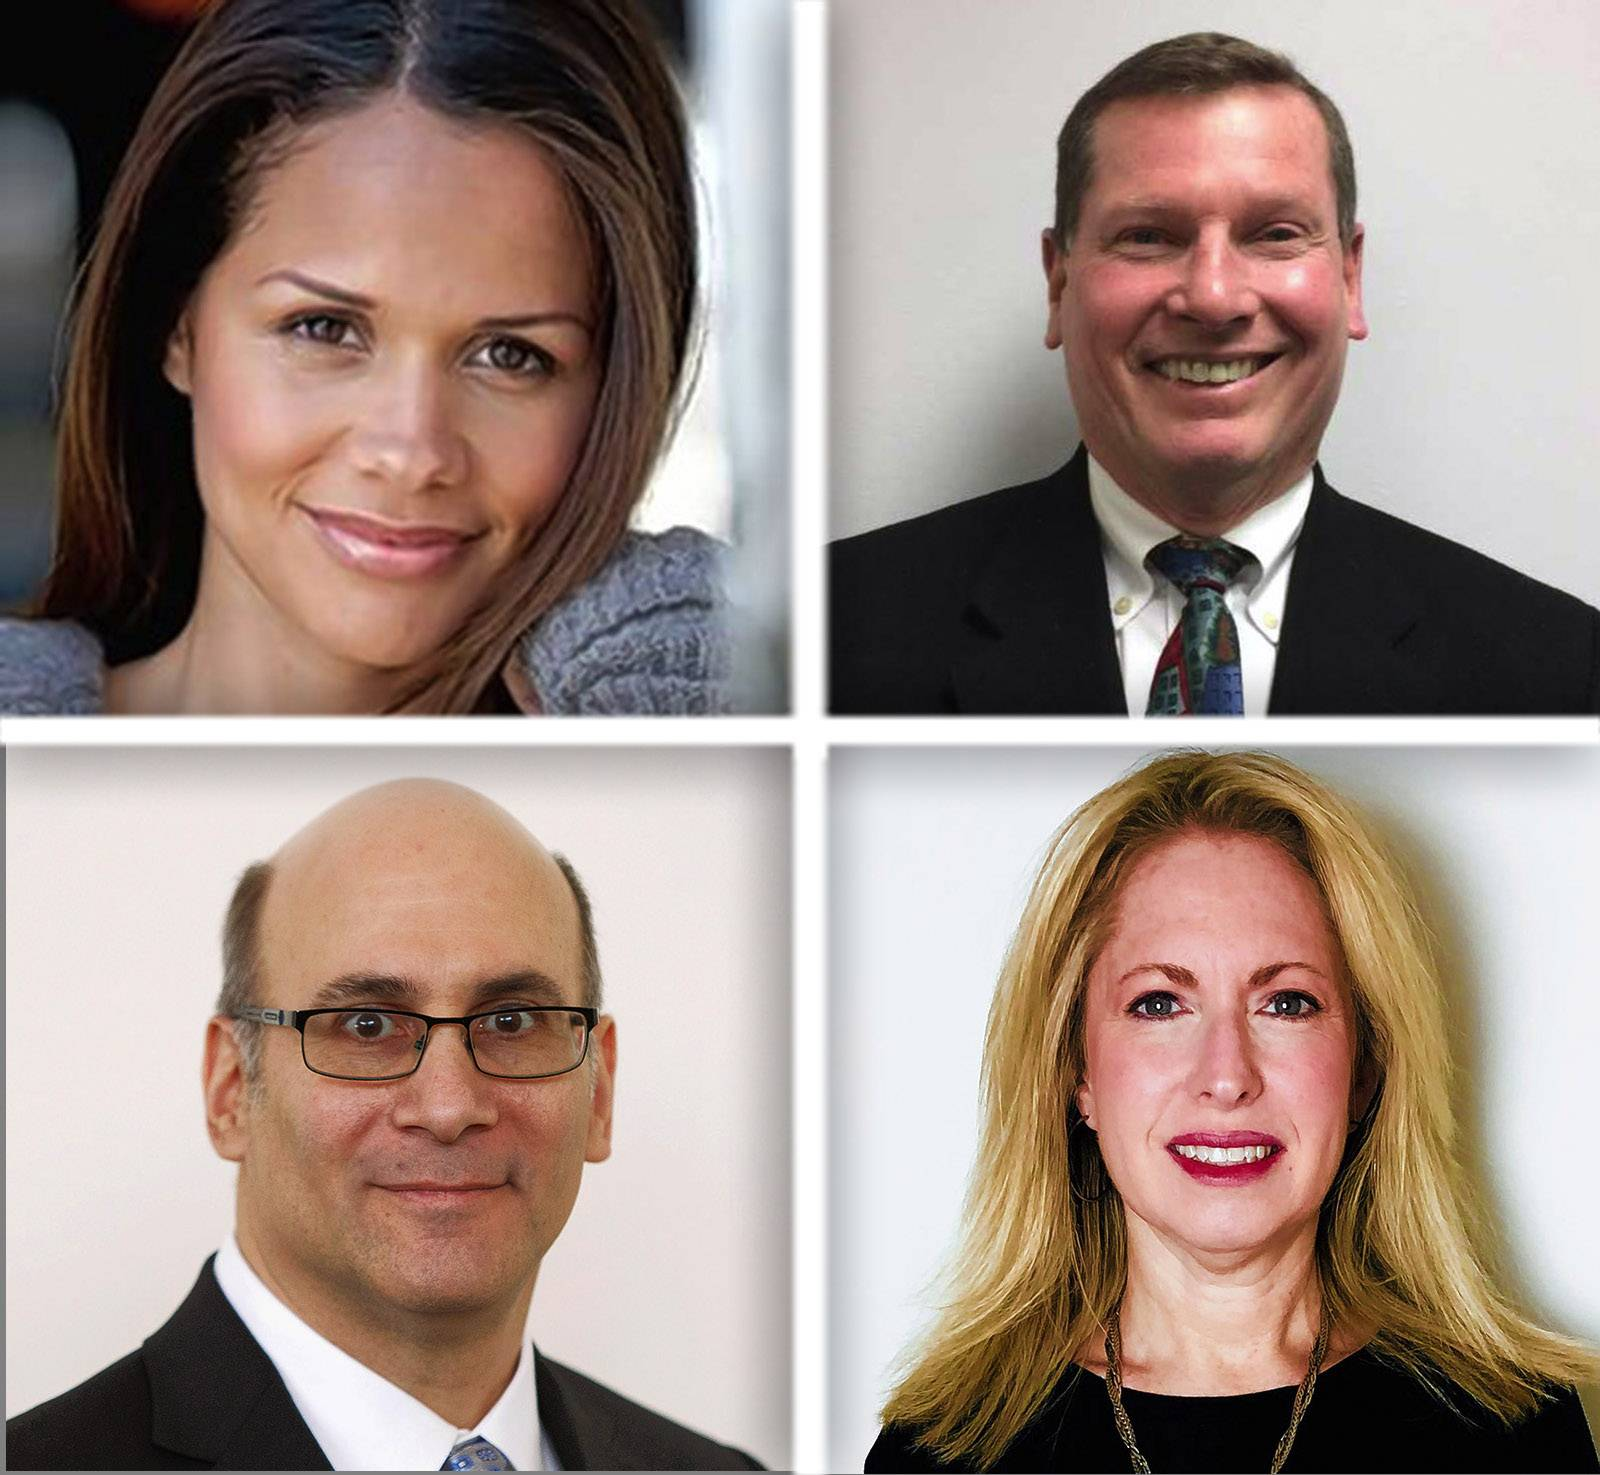 Vernon Hills village board candidates: Mall incentives needed